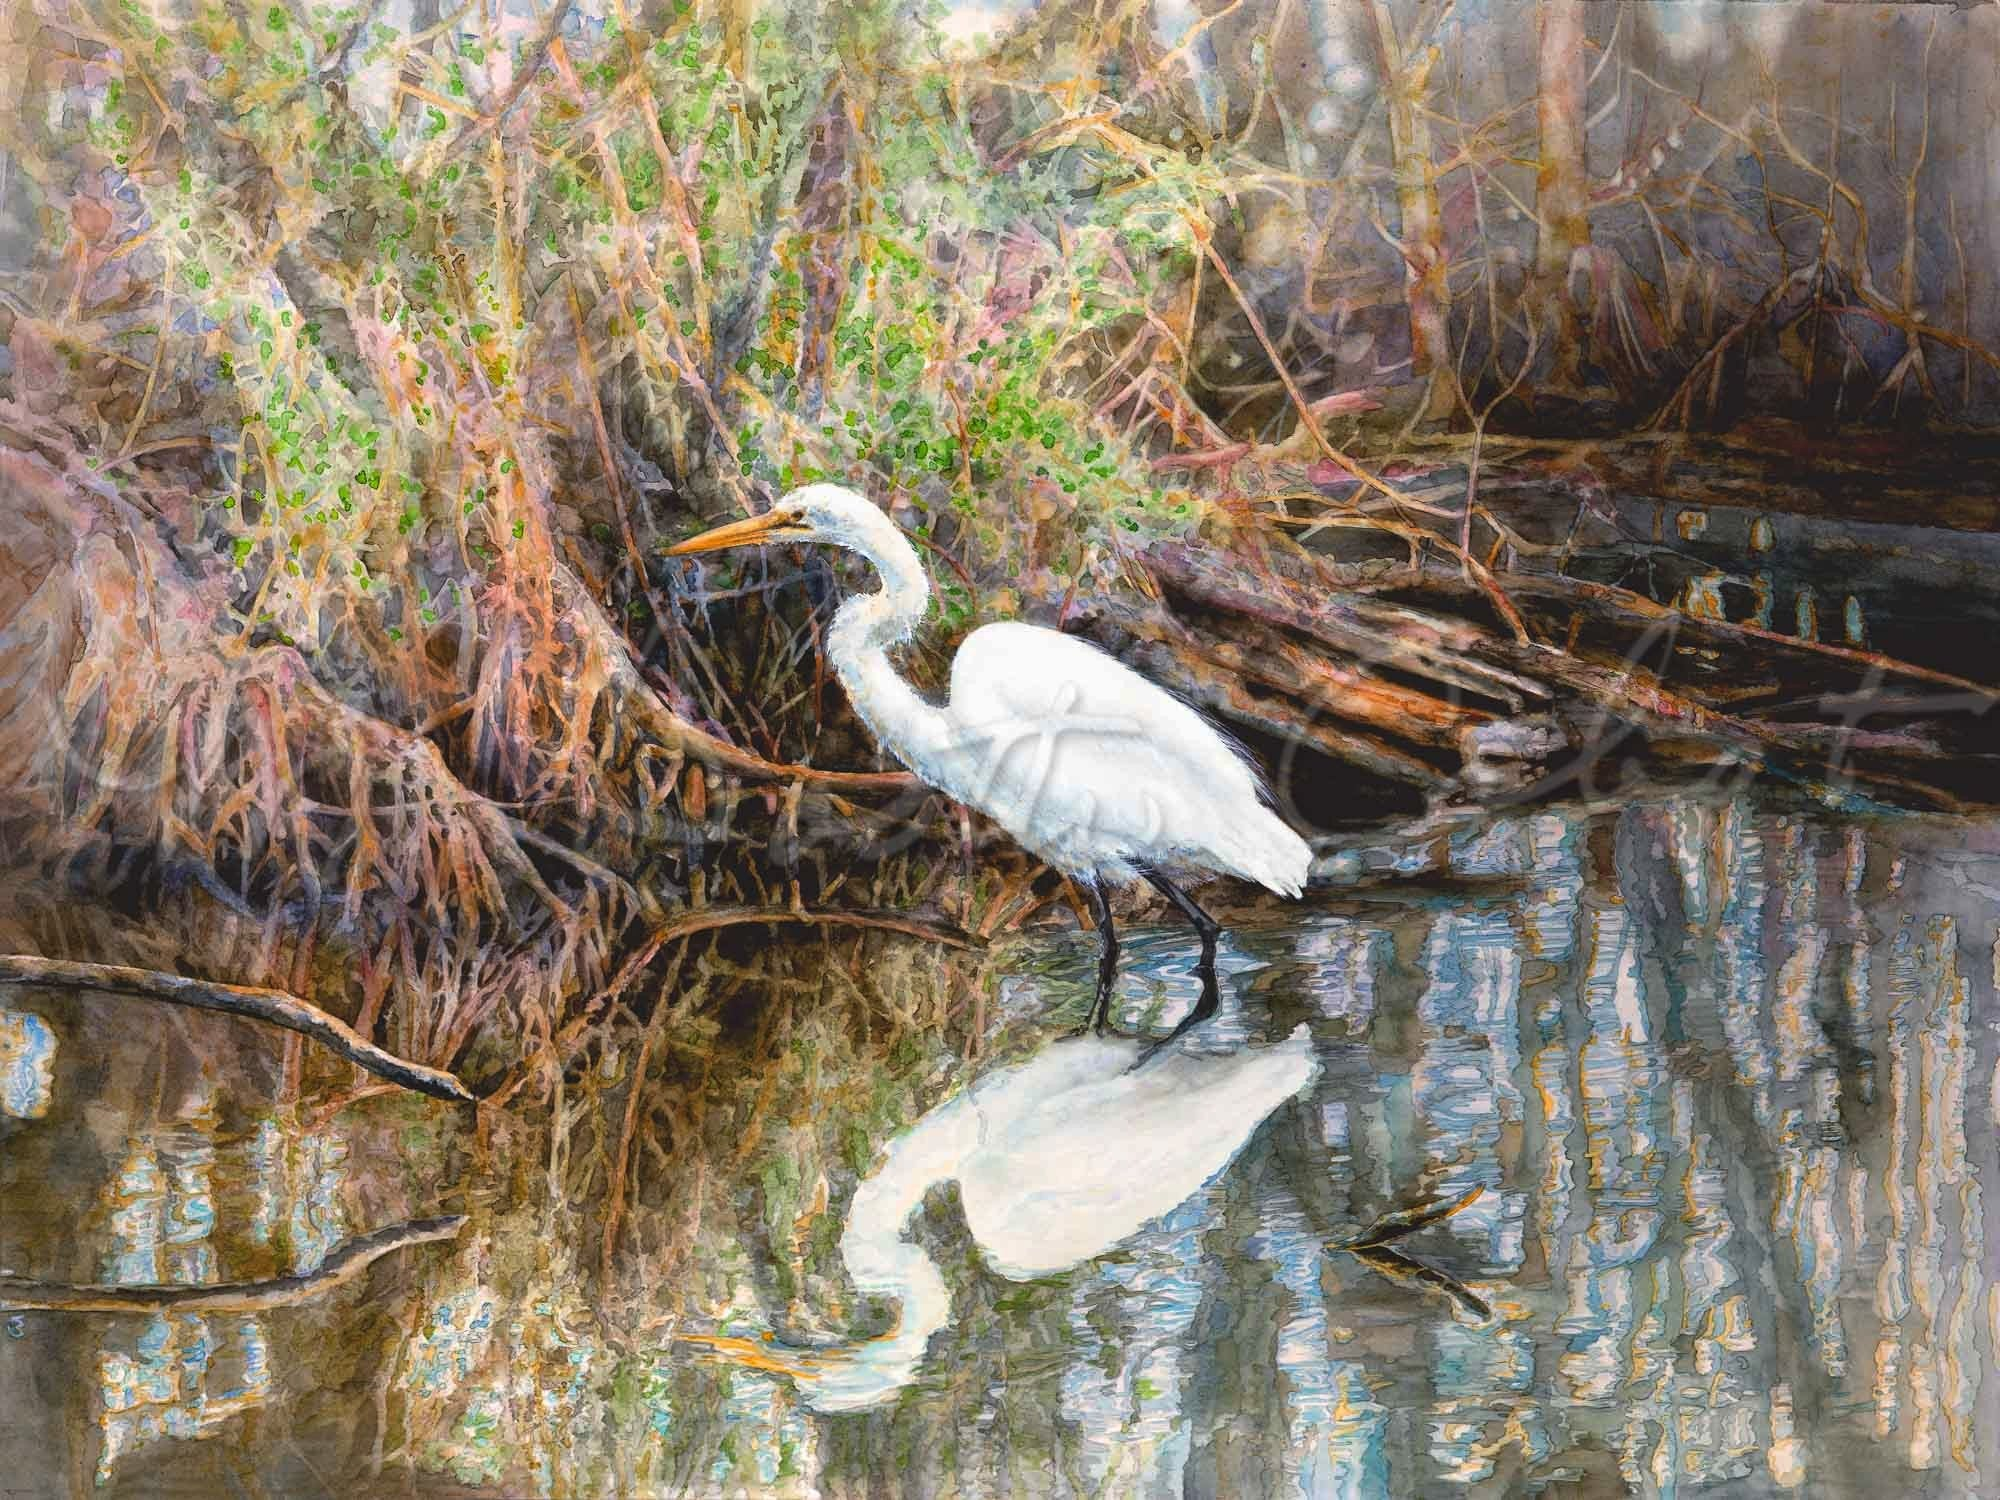 Egret in Mangrove Swamp - Watercolor